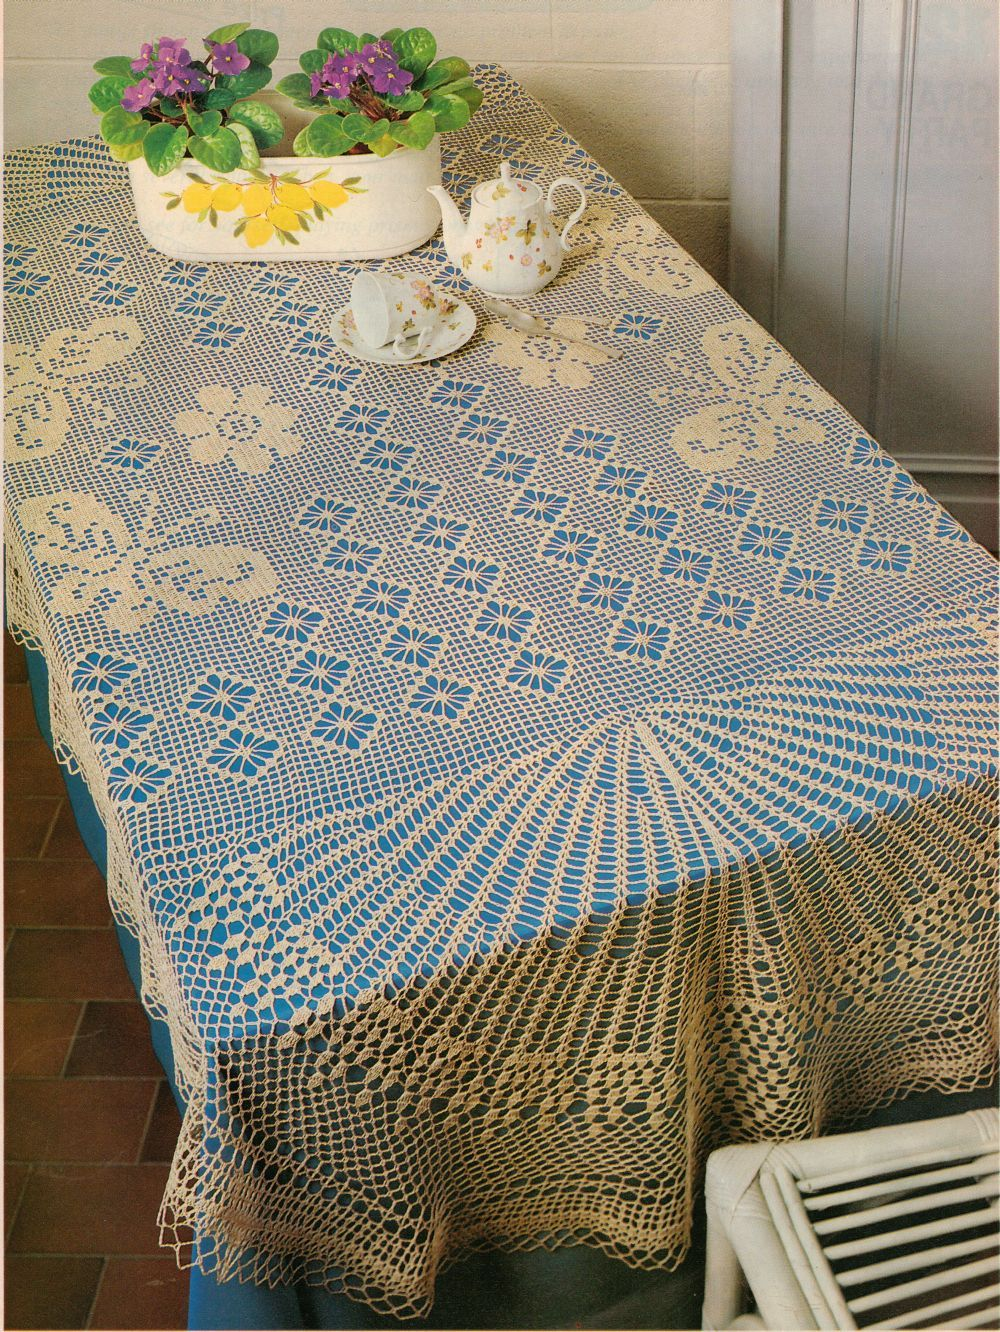 2X Challenging Butterflies Grand Party & Big Day Tablecloth Crochet Patterns